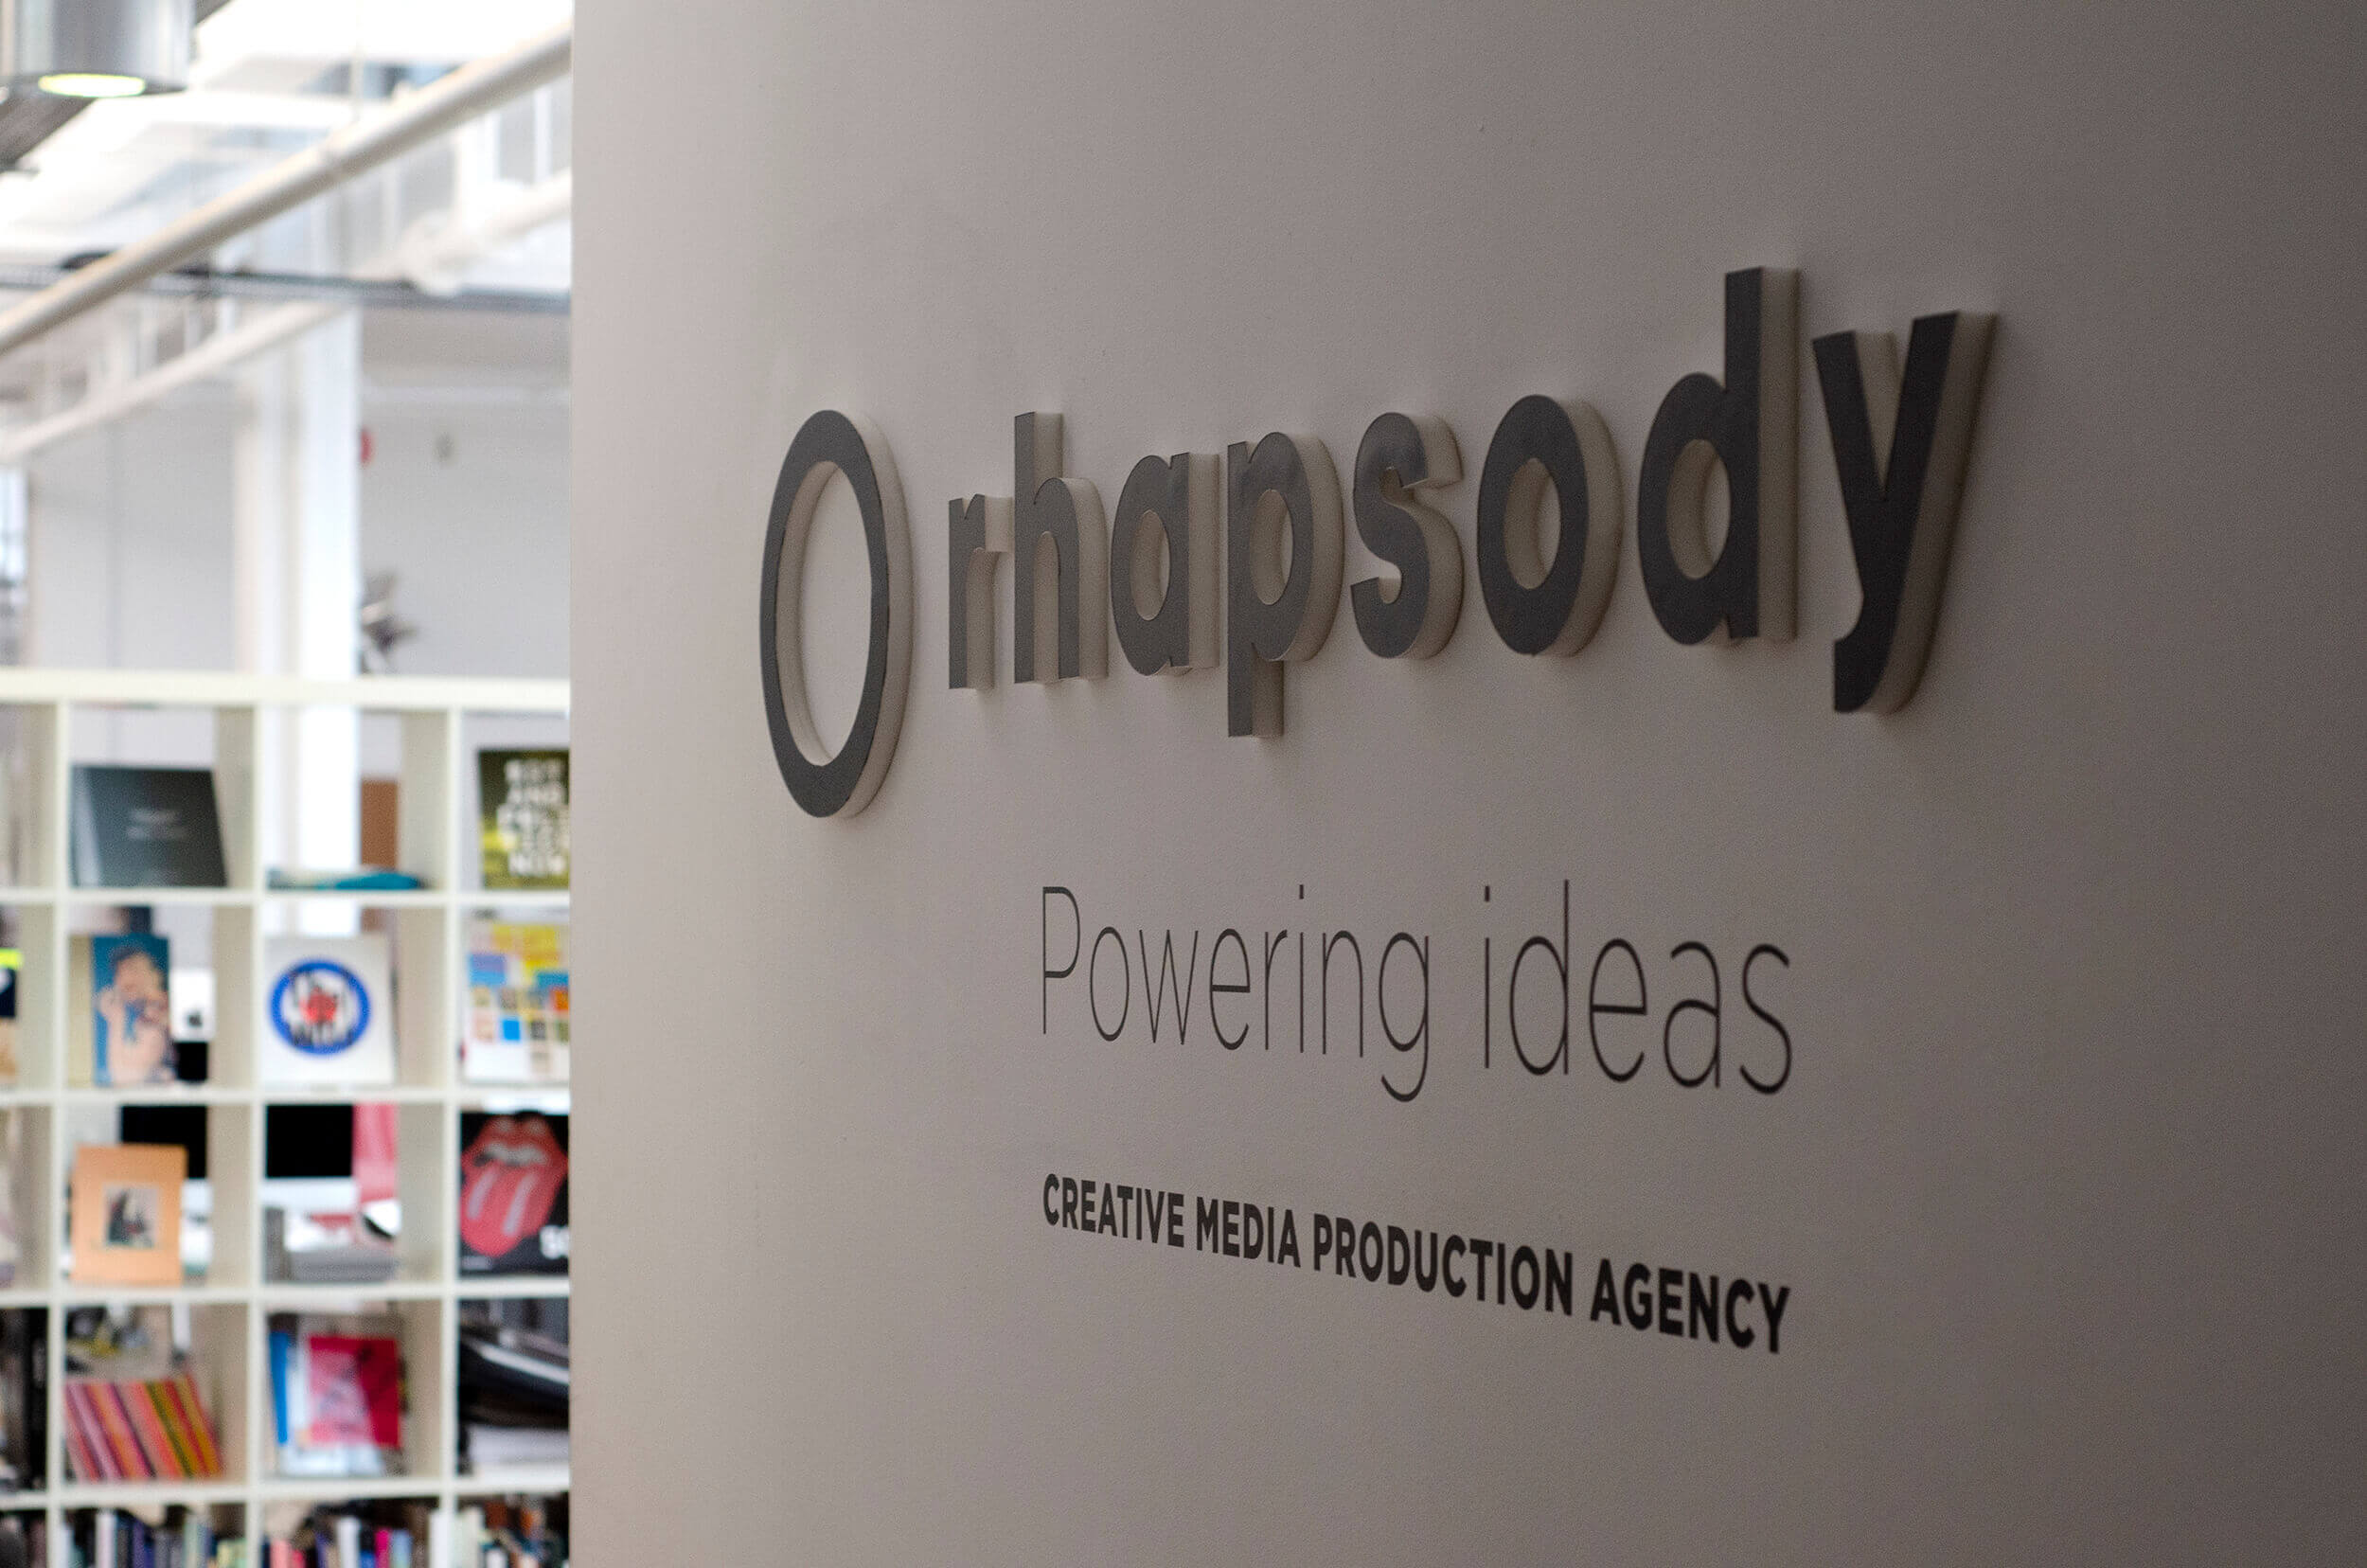 Wall with Rhapsody's logo in one of our offices.